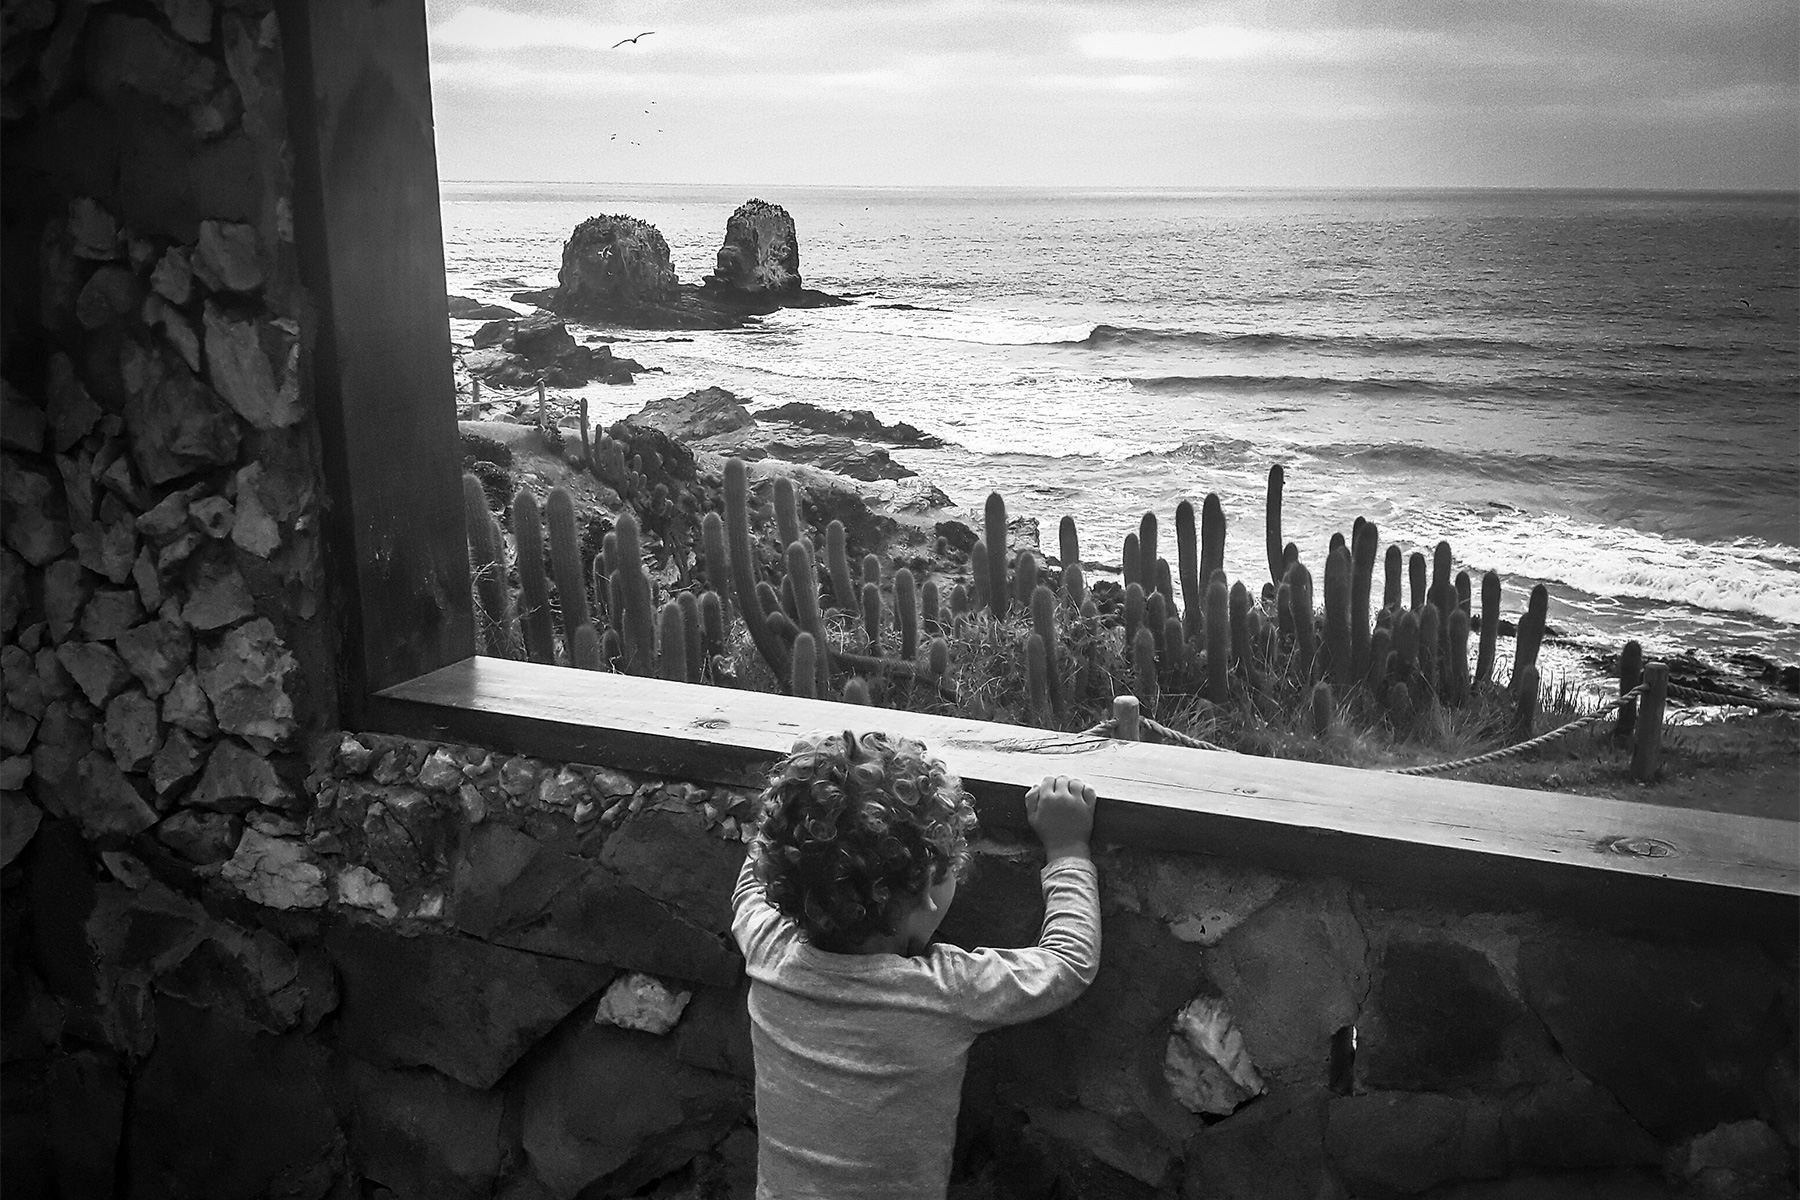 a child looking over a wall at a breaking wave at punta de lobos, by Philip Souther